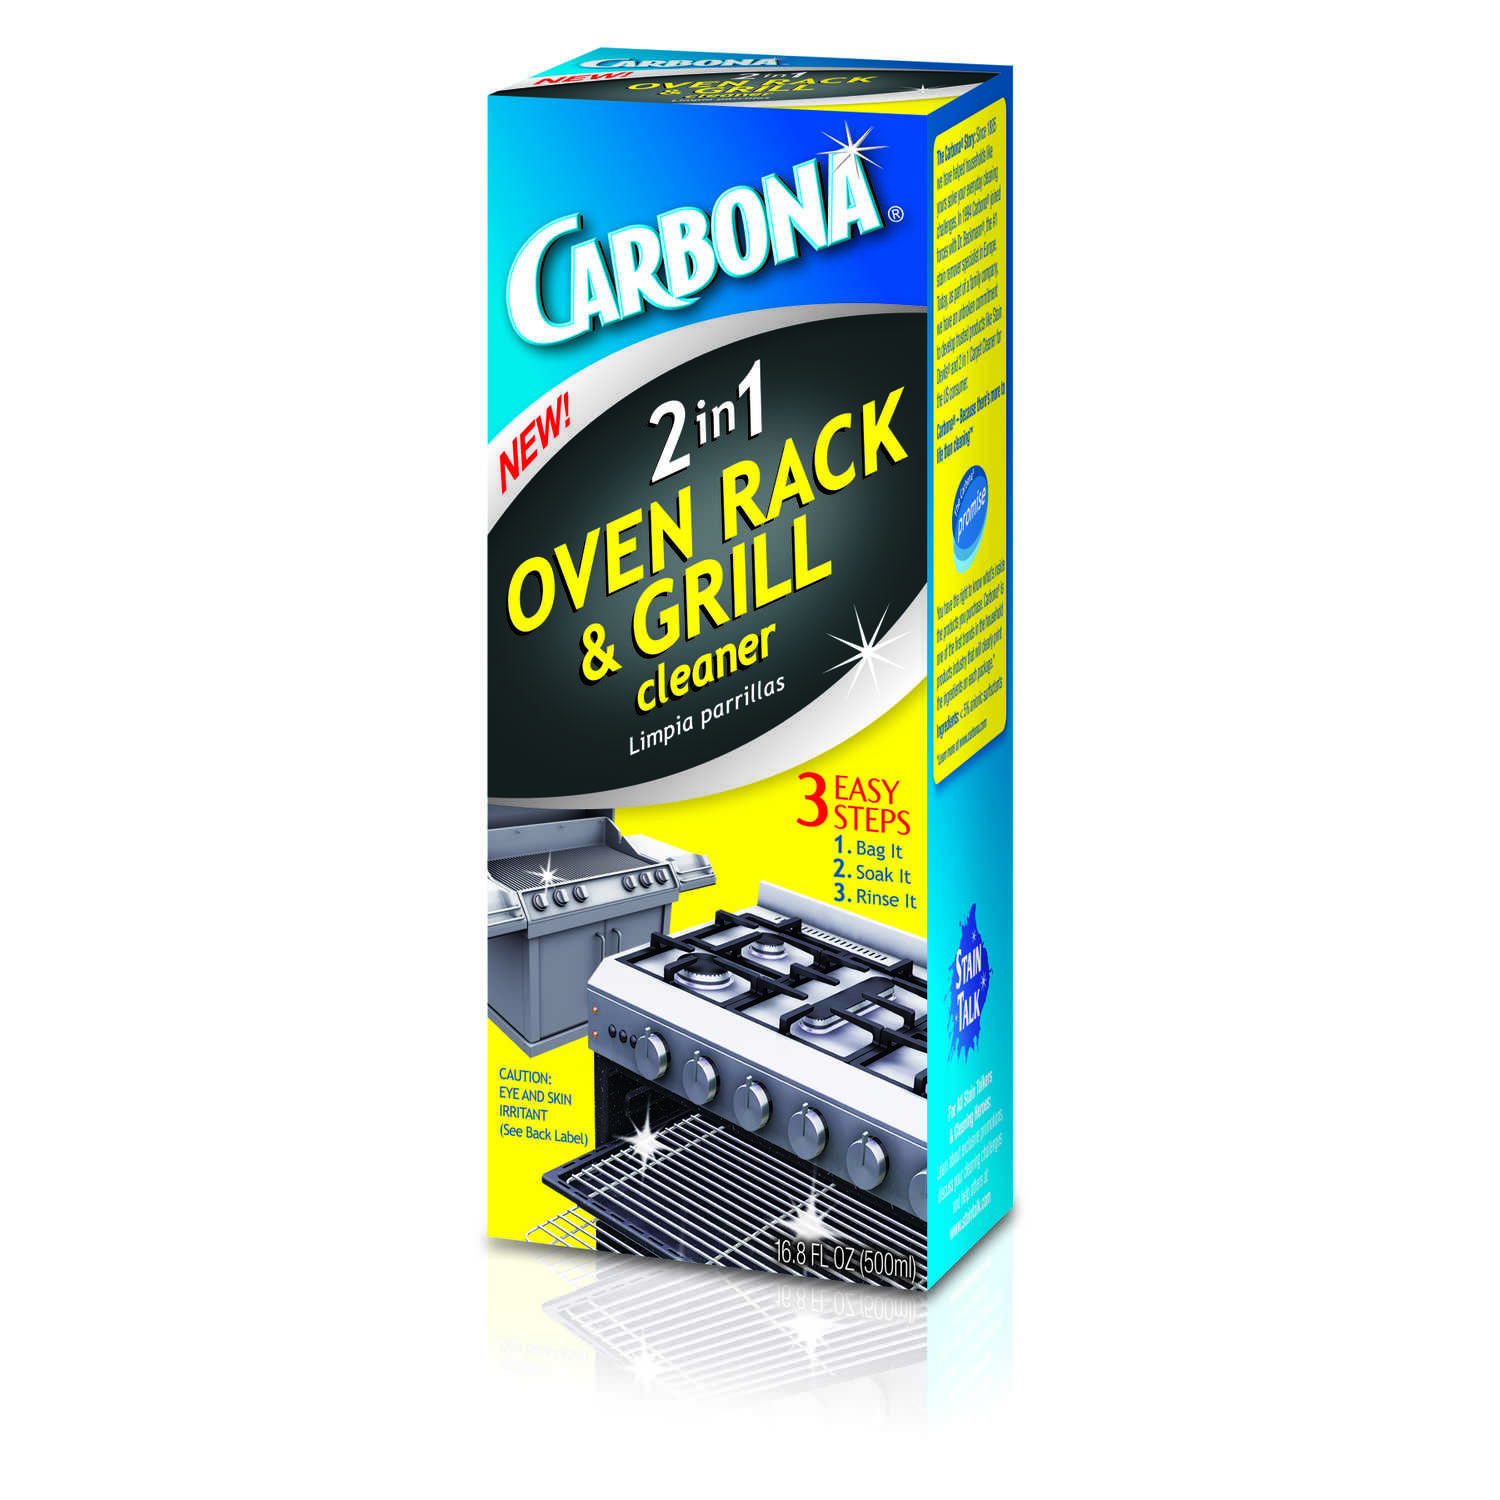 Carbona No Scent 2-in-1 Oven Rack and Grill Cleaner 16 8 oz  Liquid